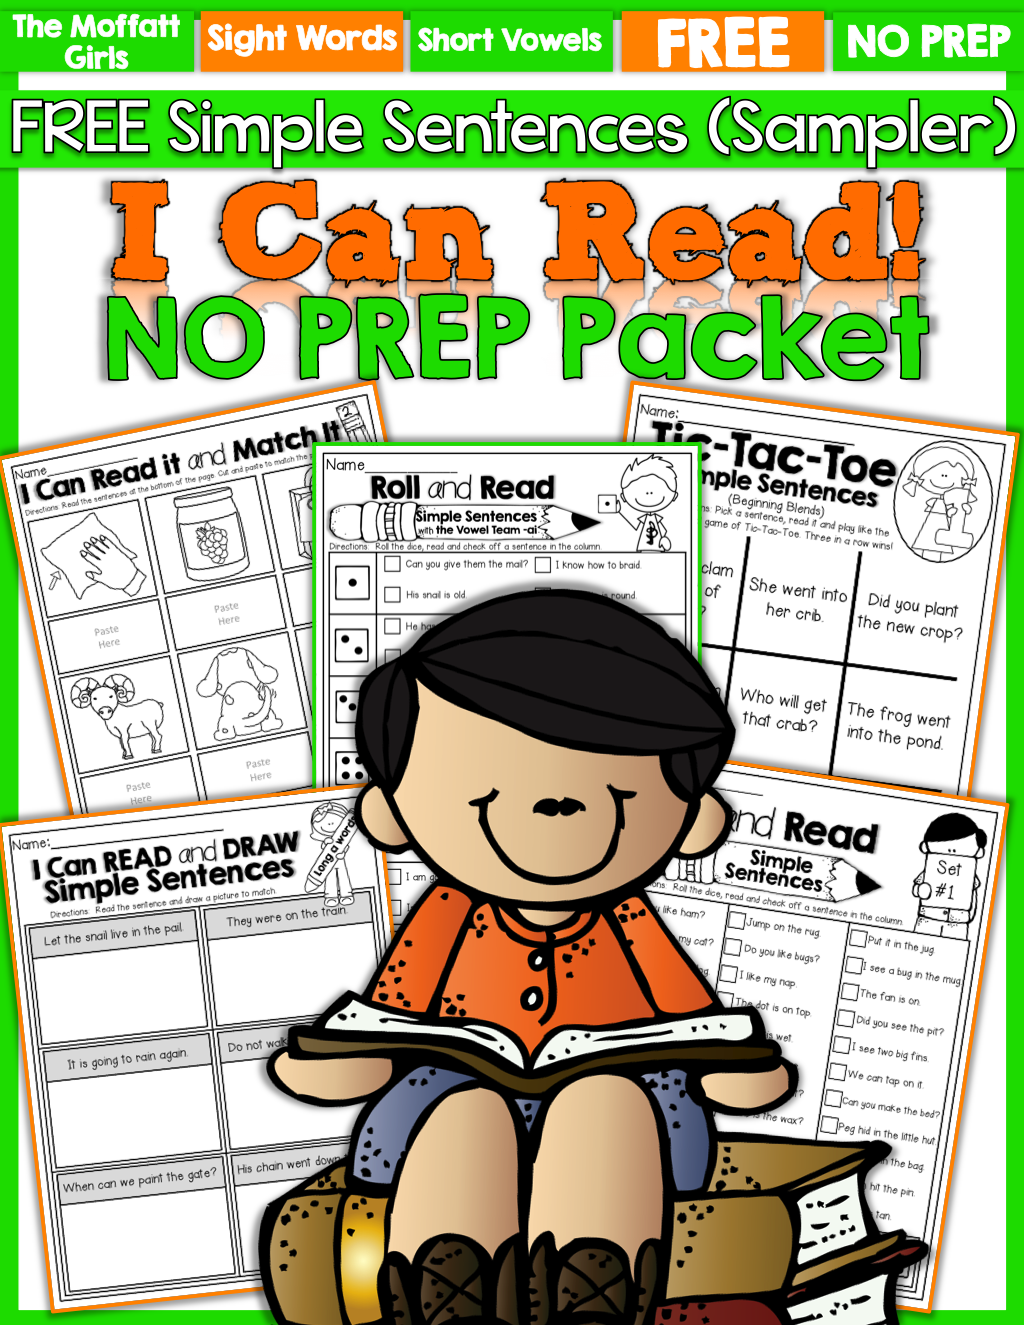 Free I Can Read Simple Sentences Packet Hands On Activities That Build Fluency And Confidence